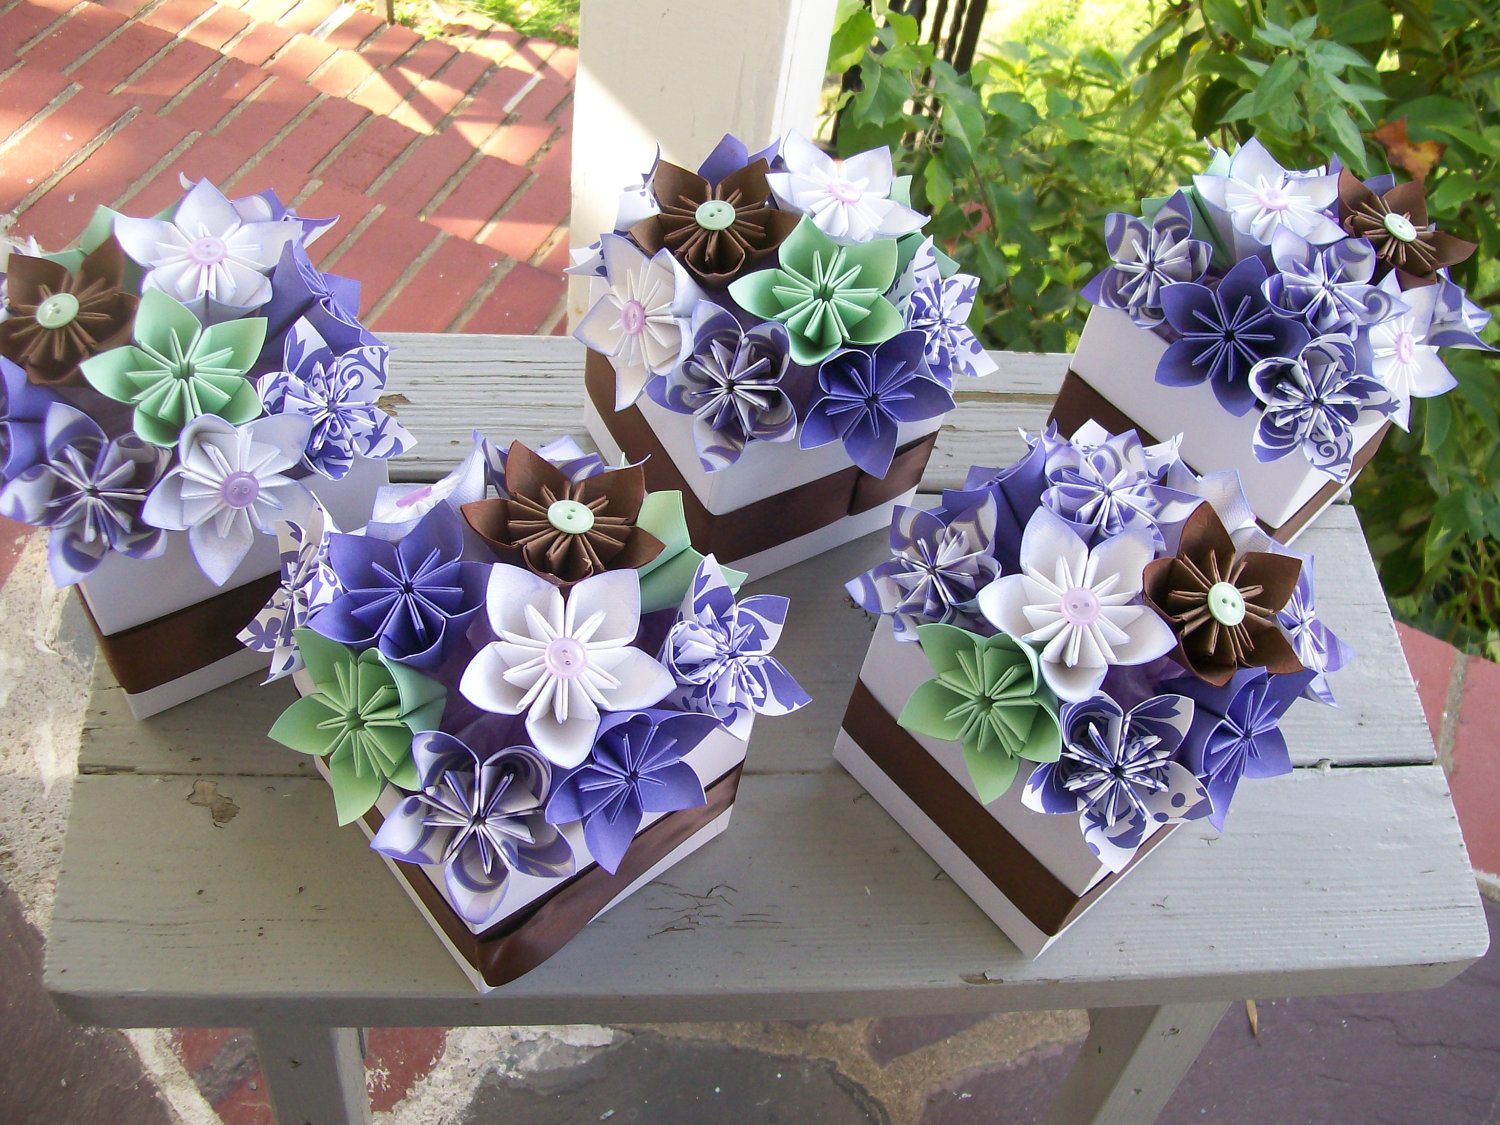 Liven Your Look And Save Money With Do It Yourself Wedding Centerpieces Mywedstyle Com